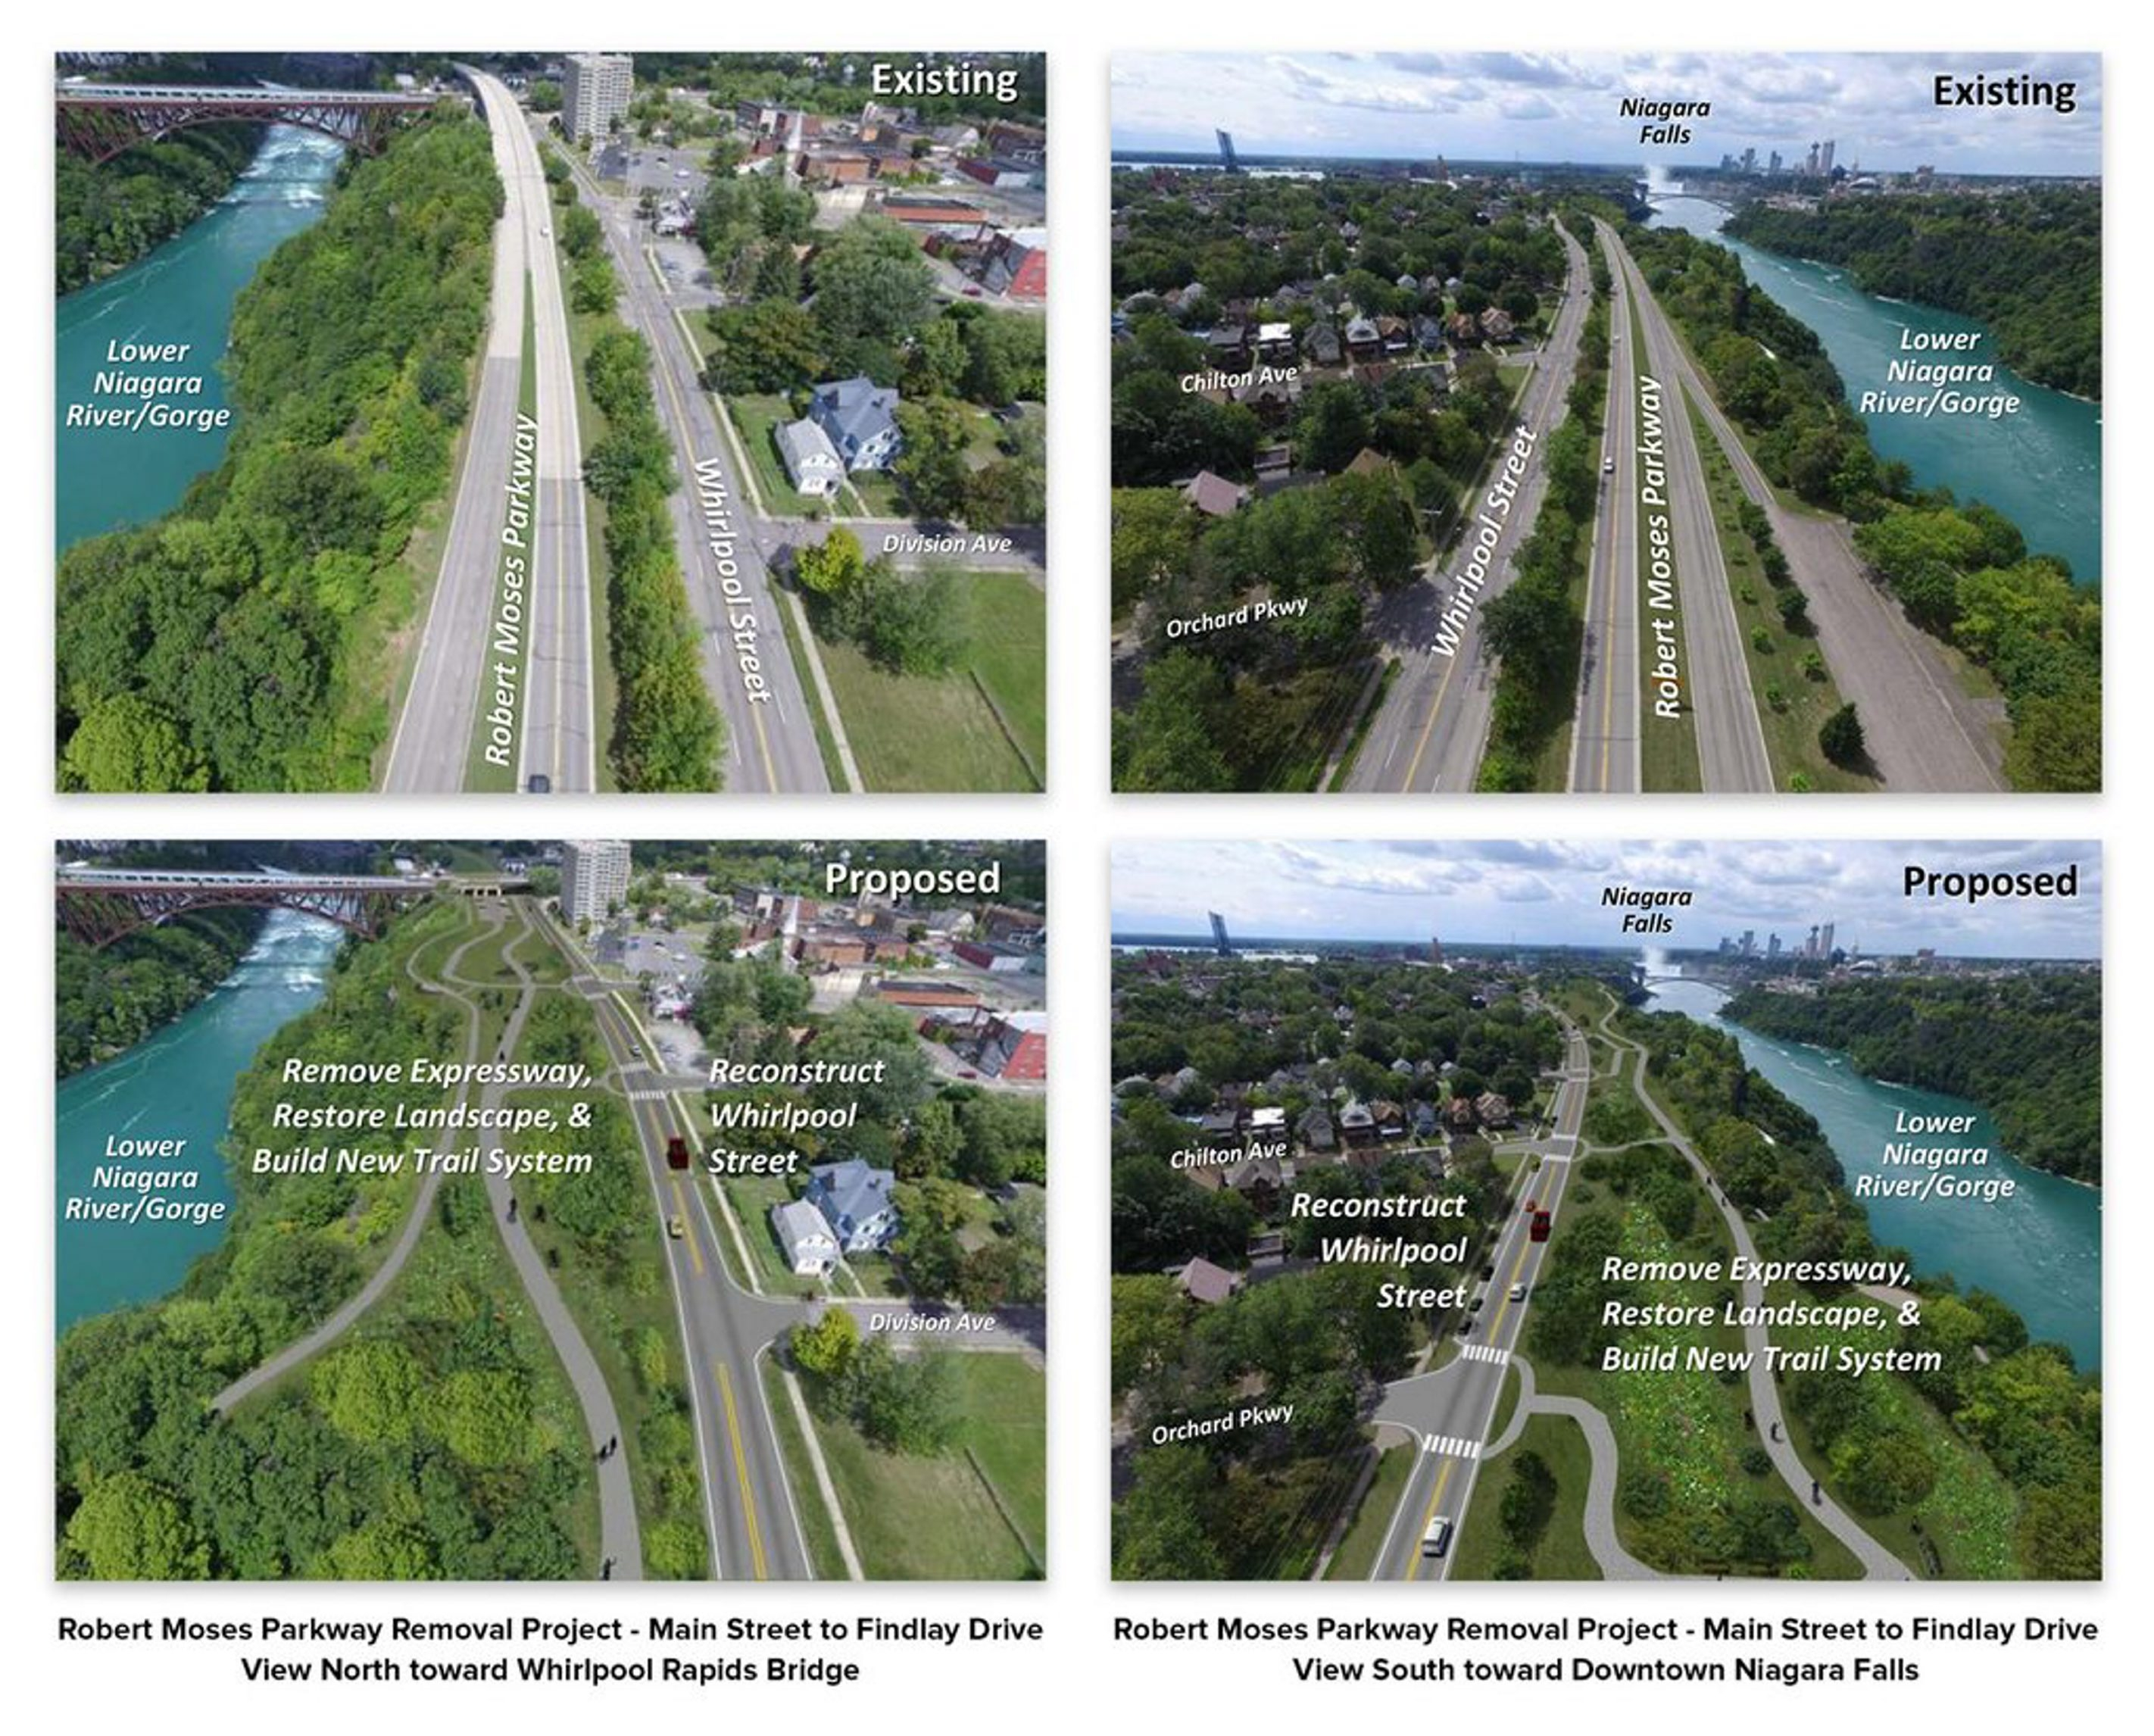 Robert Moses Parkway Removal project: Main Street to Findlay Drive, looking north toward the Whirlpool Rapids Bridge.  Robert Moses Parkway Removal project: This view of Main Street to Findlay Drive looks south toward downtown Niagara Falls.